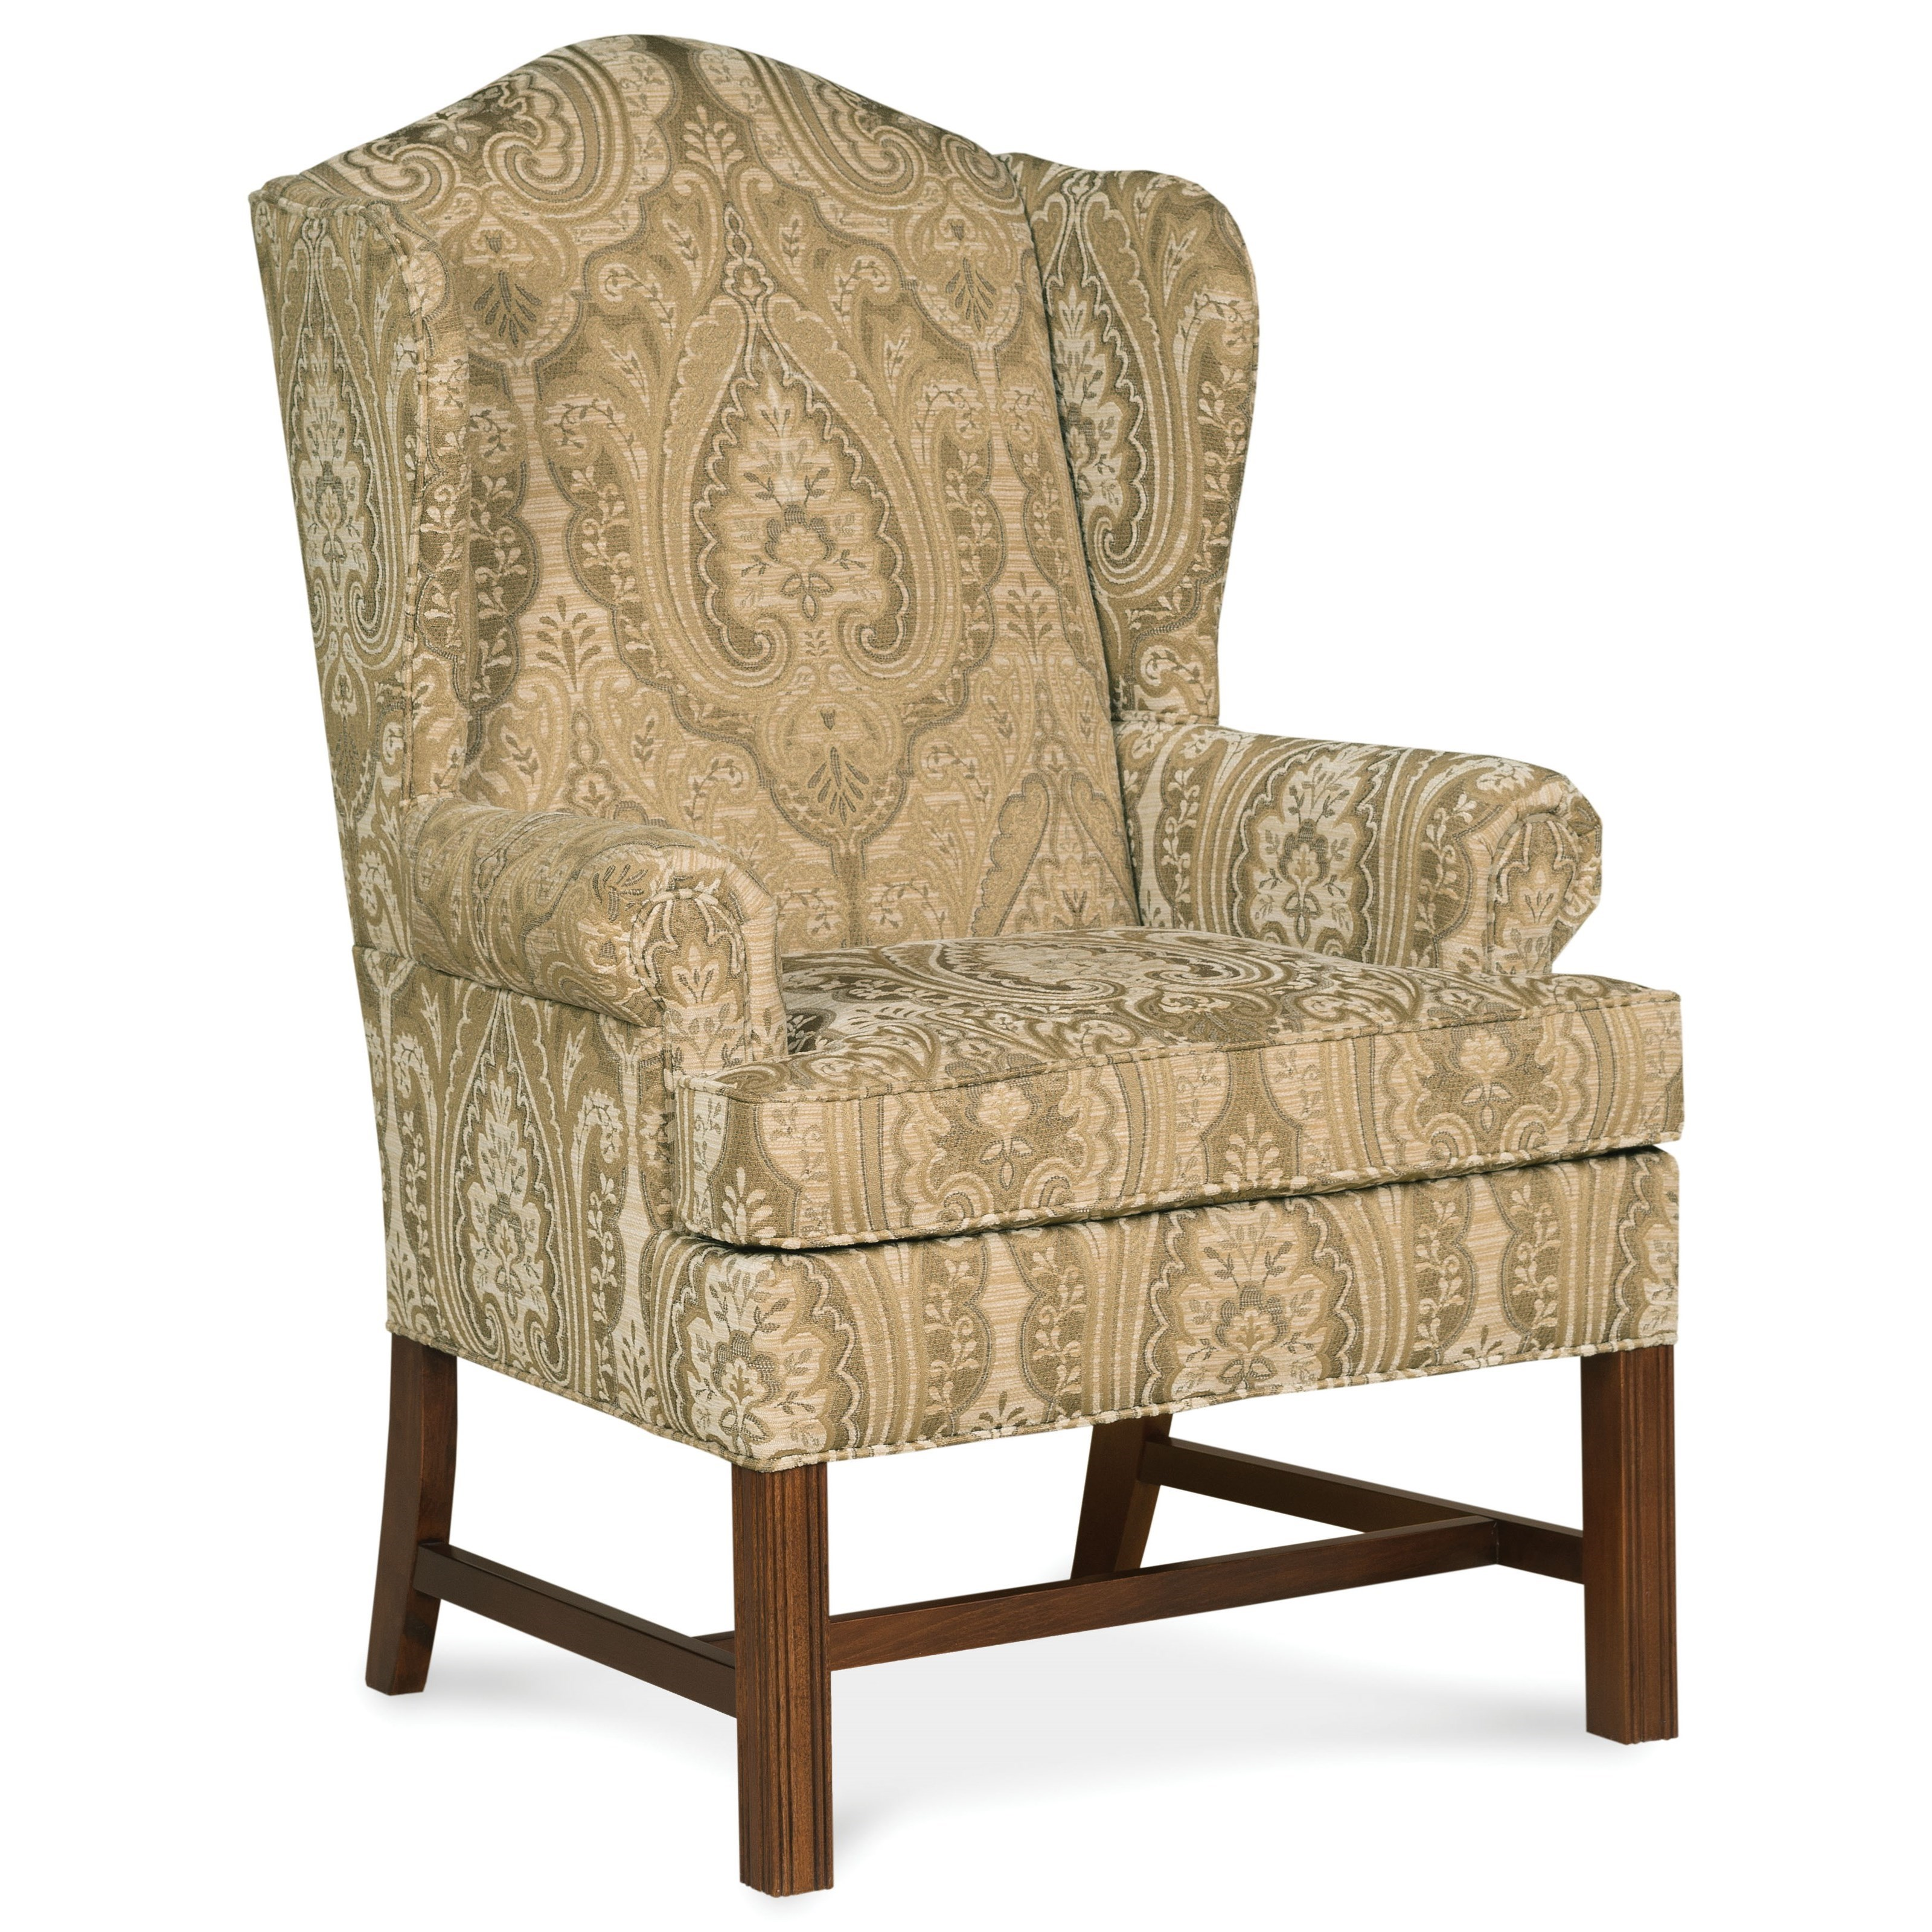 1072 Upholstered Wing Chair by Fairfield at Lindy's Furniture Company